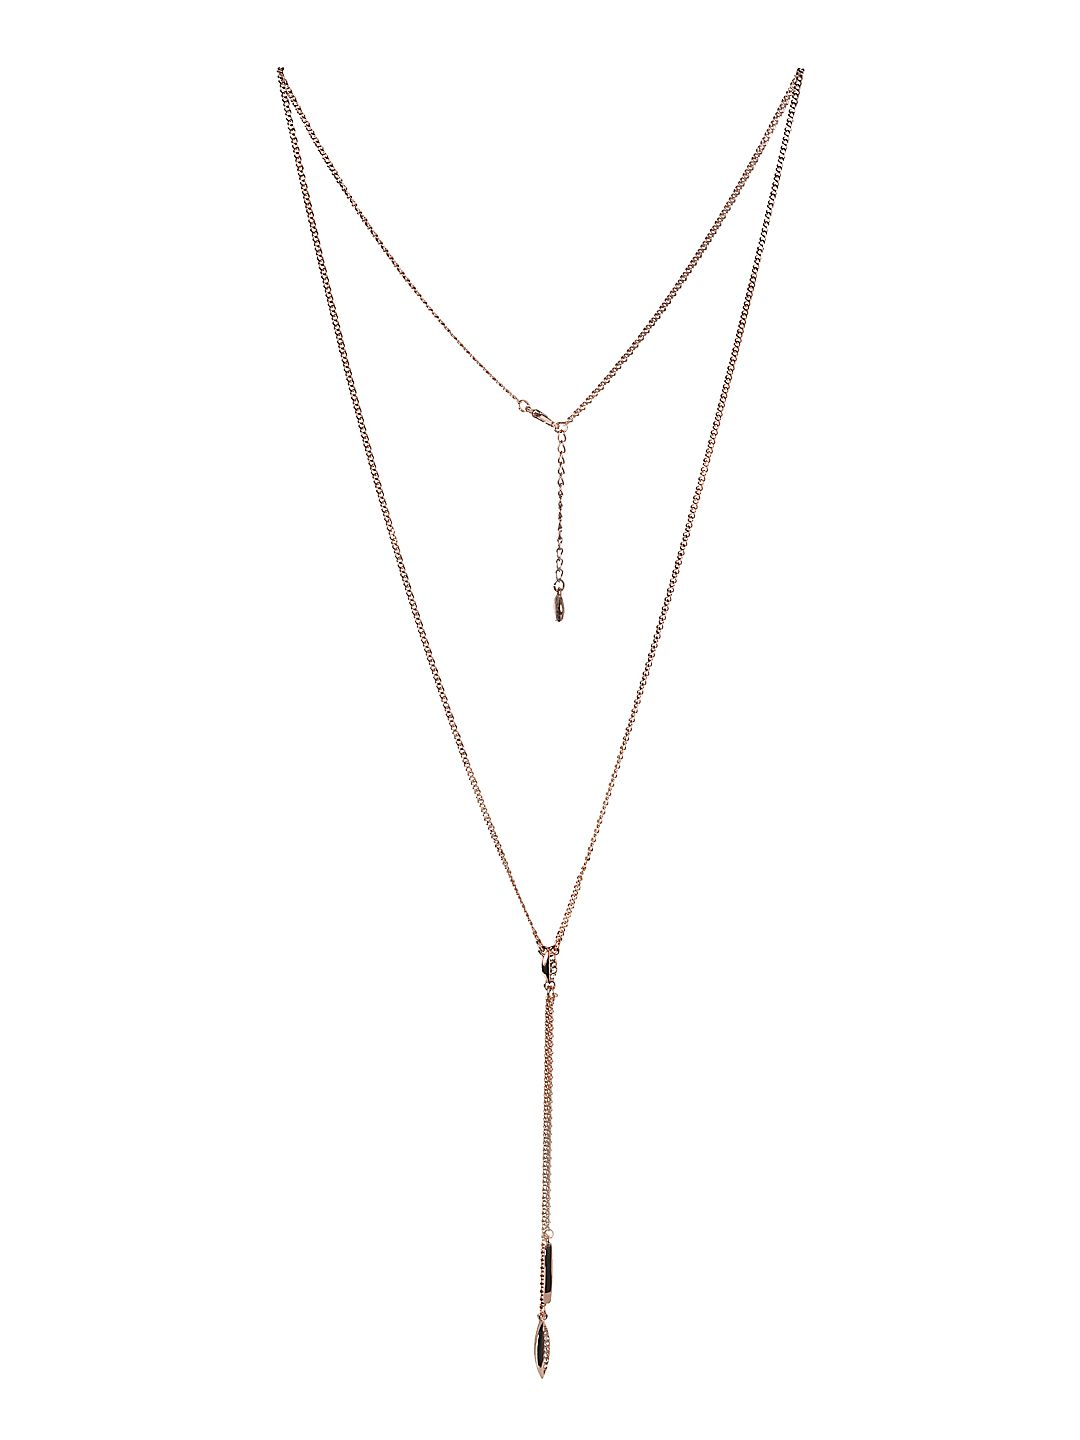 Replenishment Group Y-Necklace